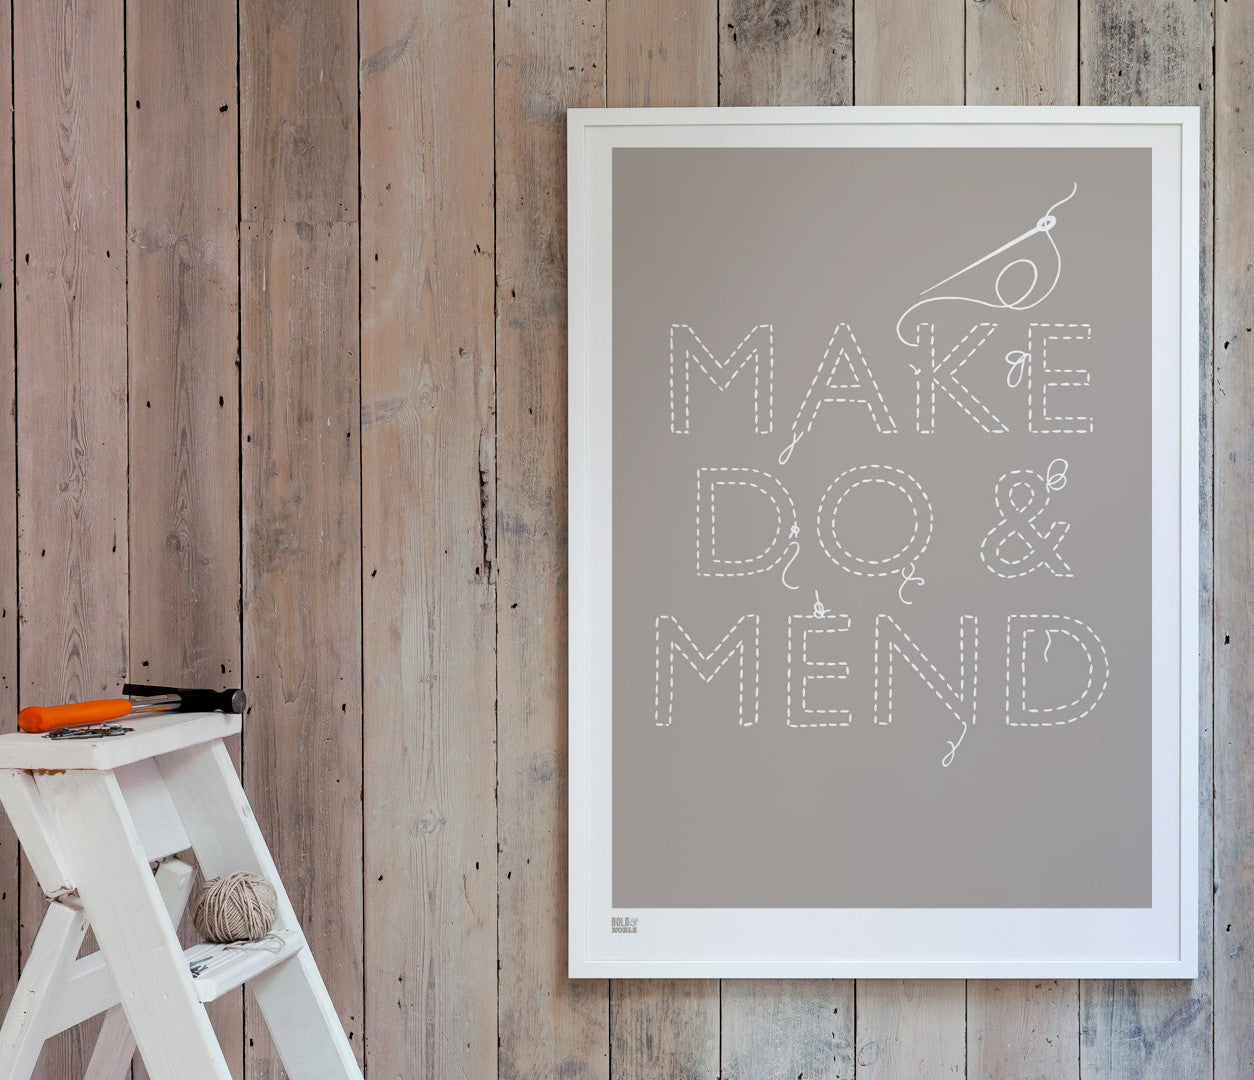 Pictures and Wall Art, Screen Printed Make do and Mend printed in Warm Stone